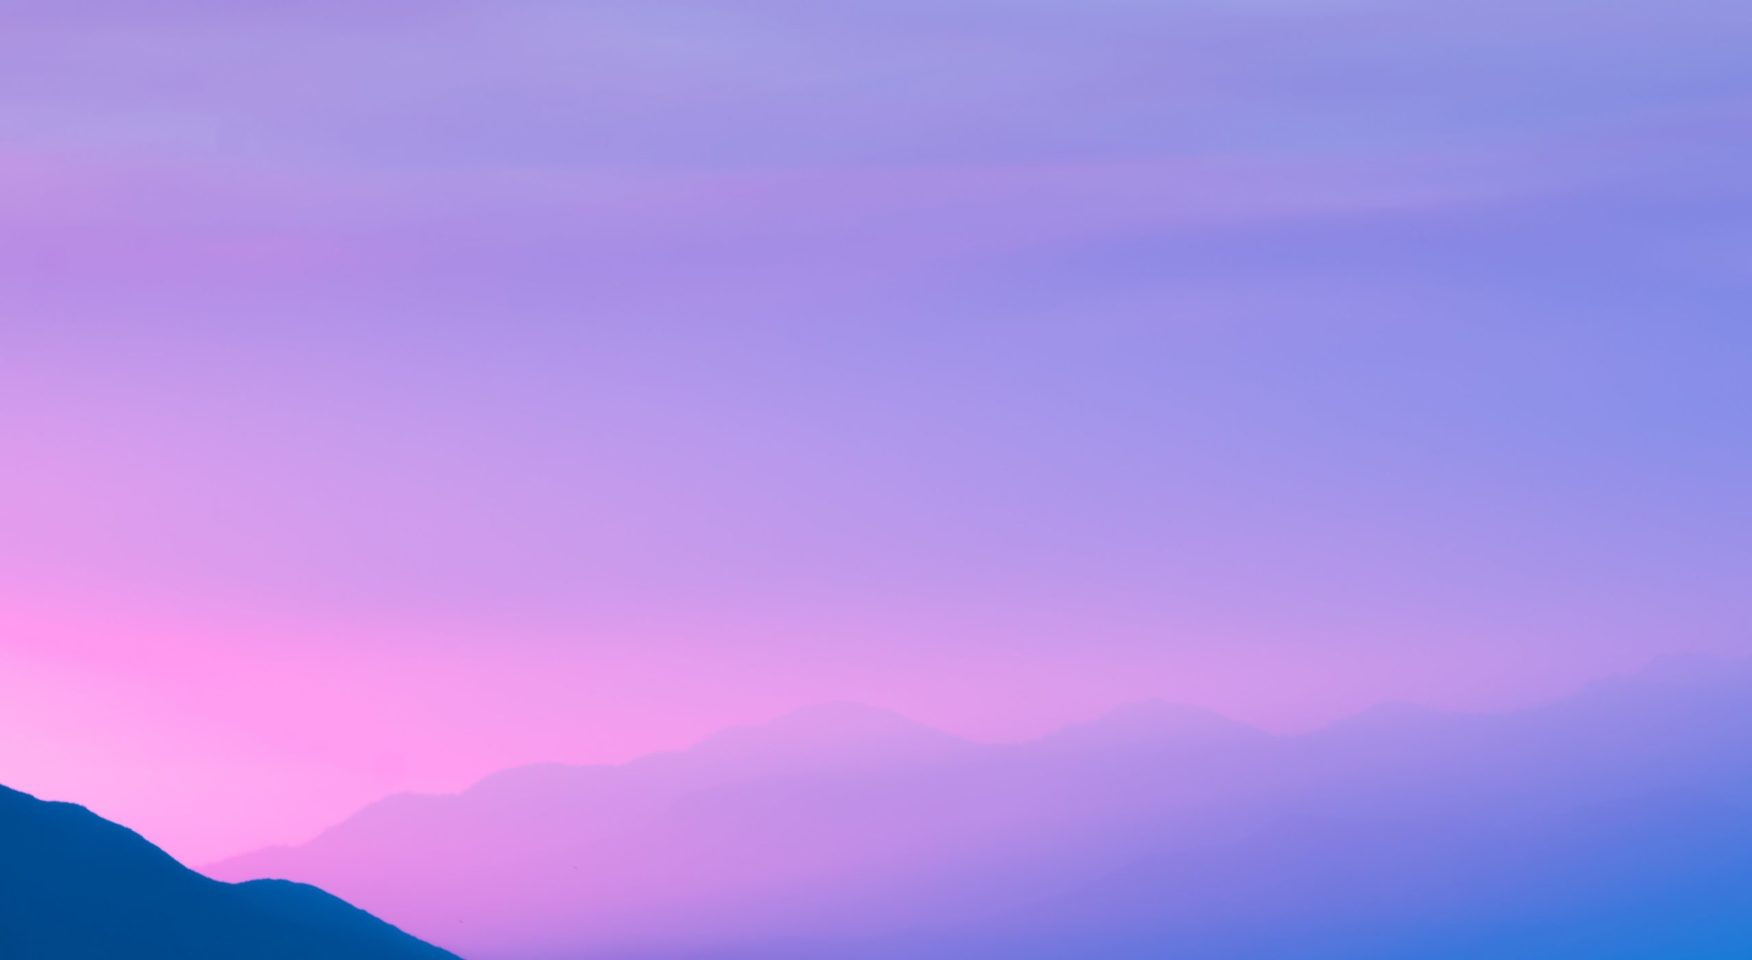 Brilliant purple pink sky over mountains